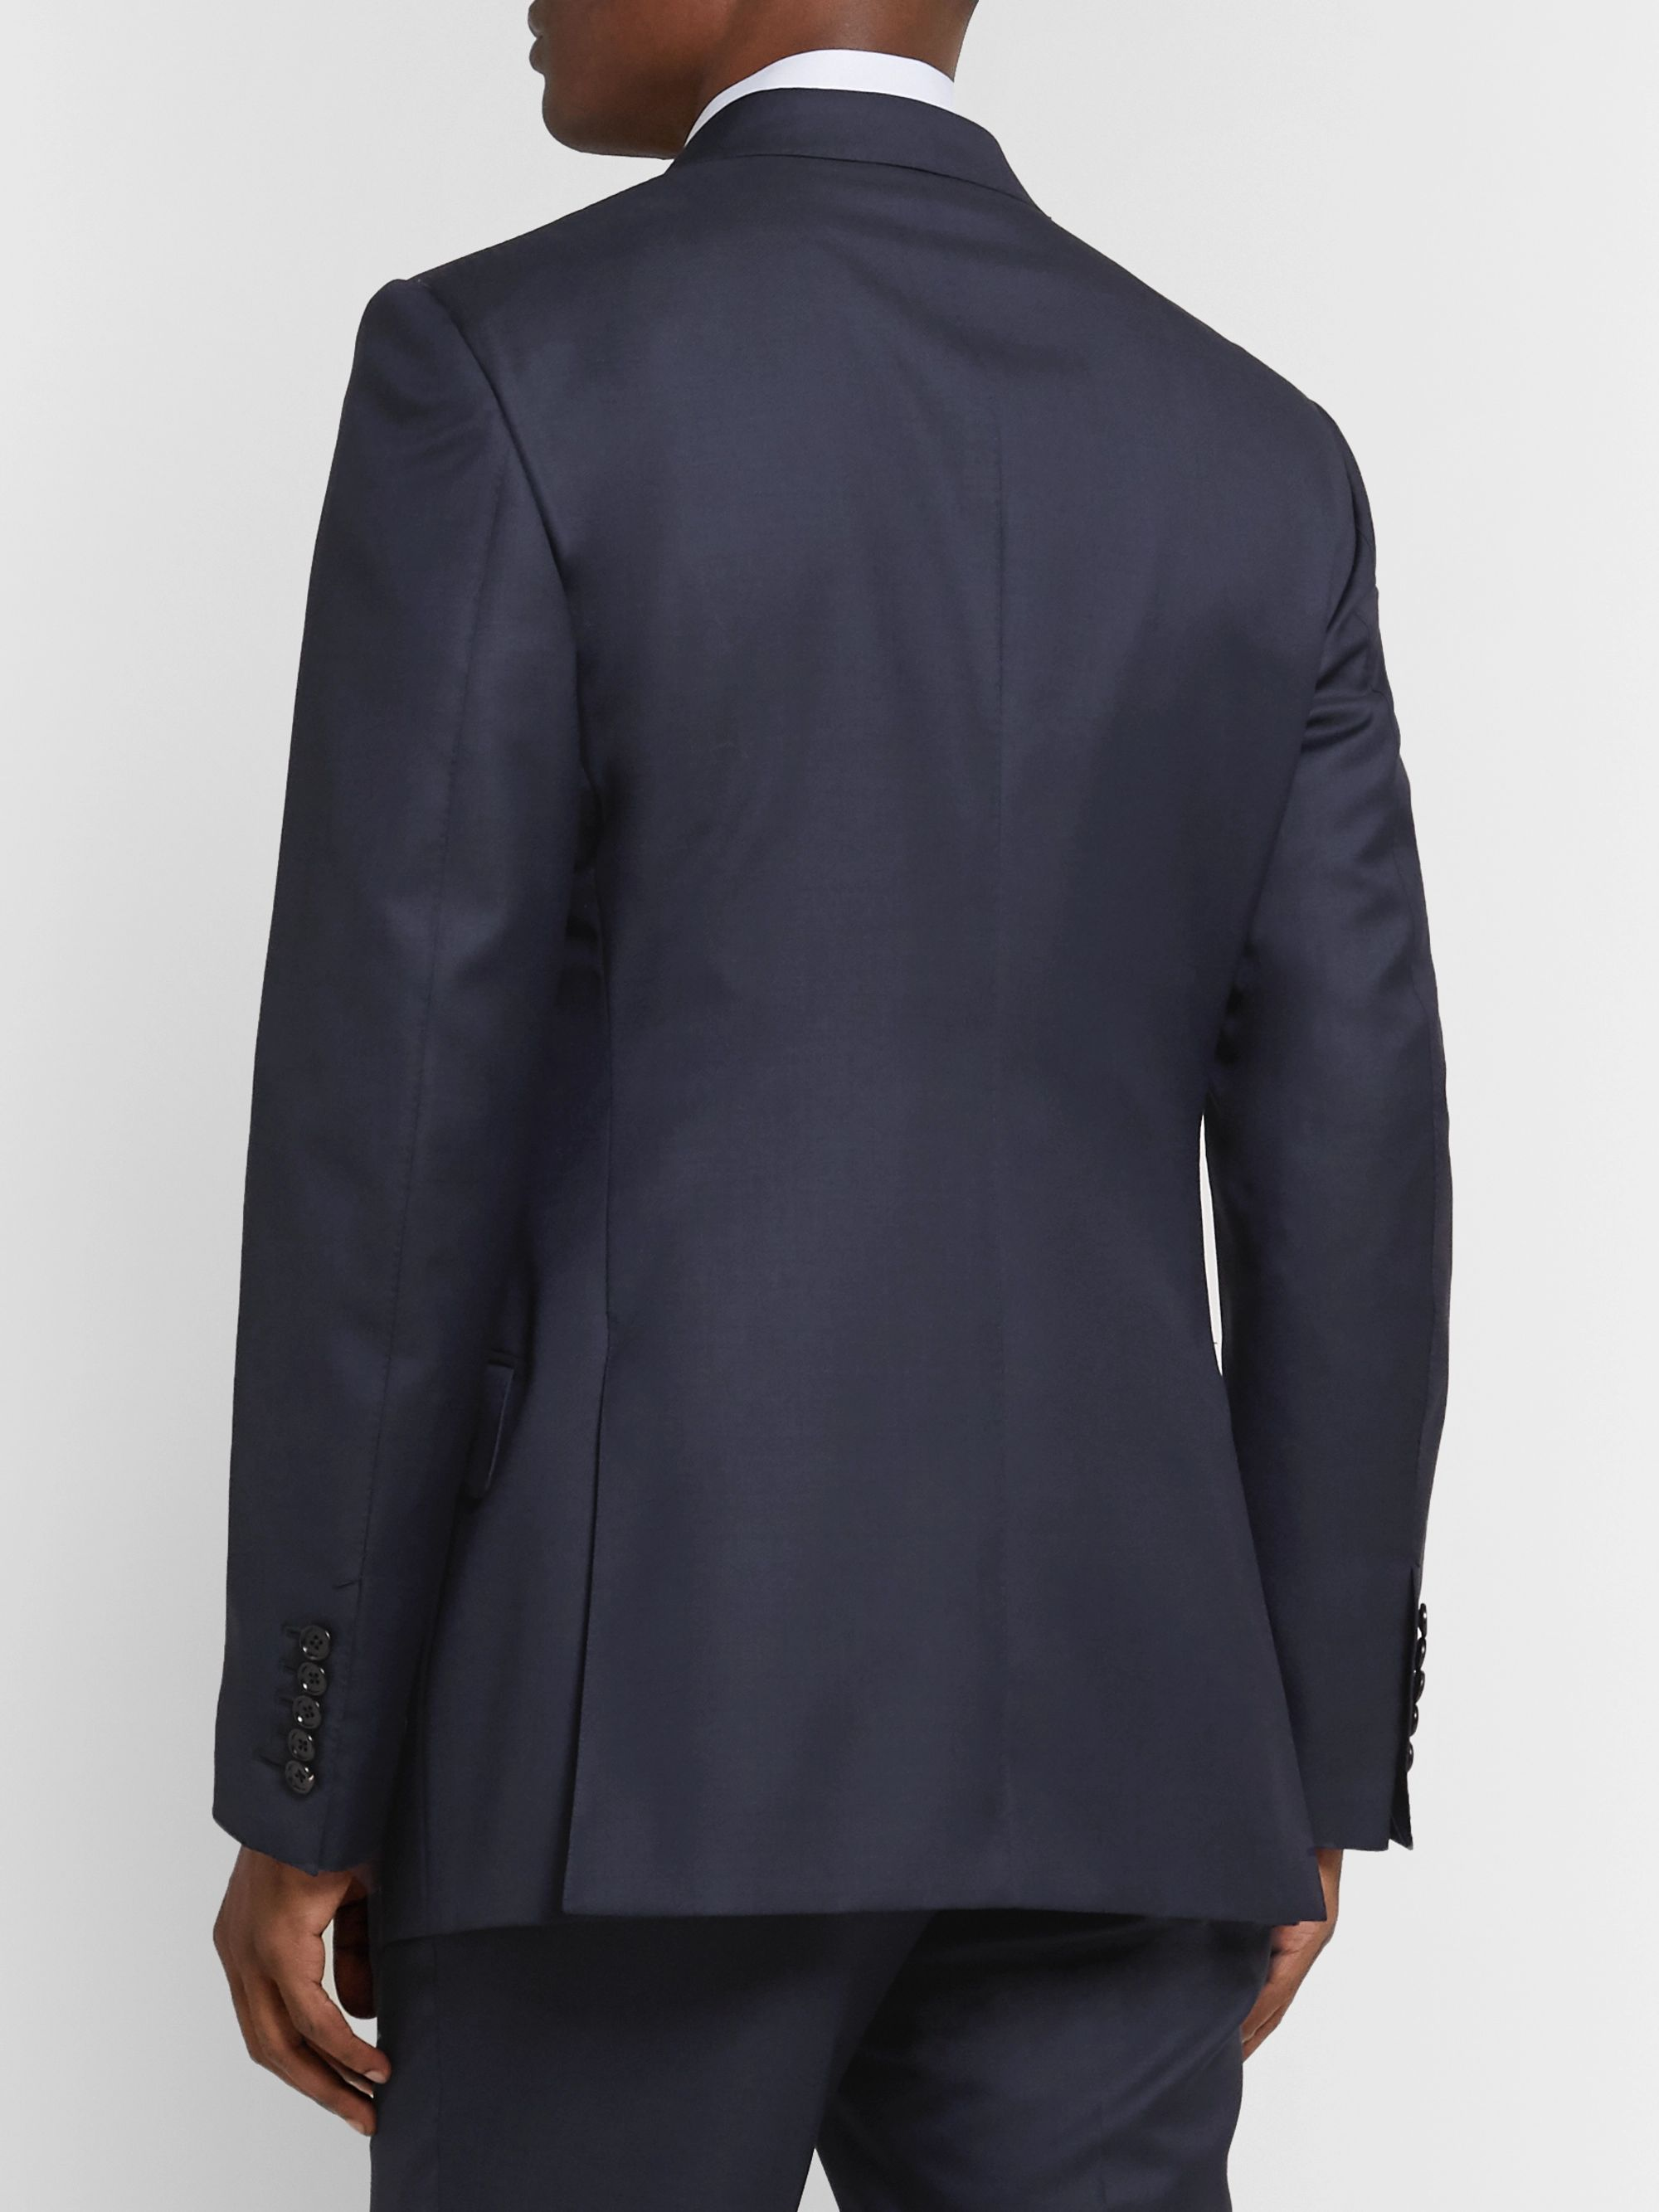 TOM FORD Navy O'Connor Slim-Fit Super 110s Wool-Sharkskin Suit Jacket